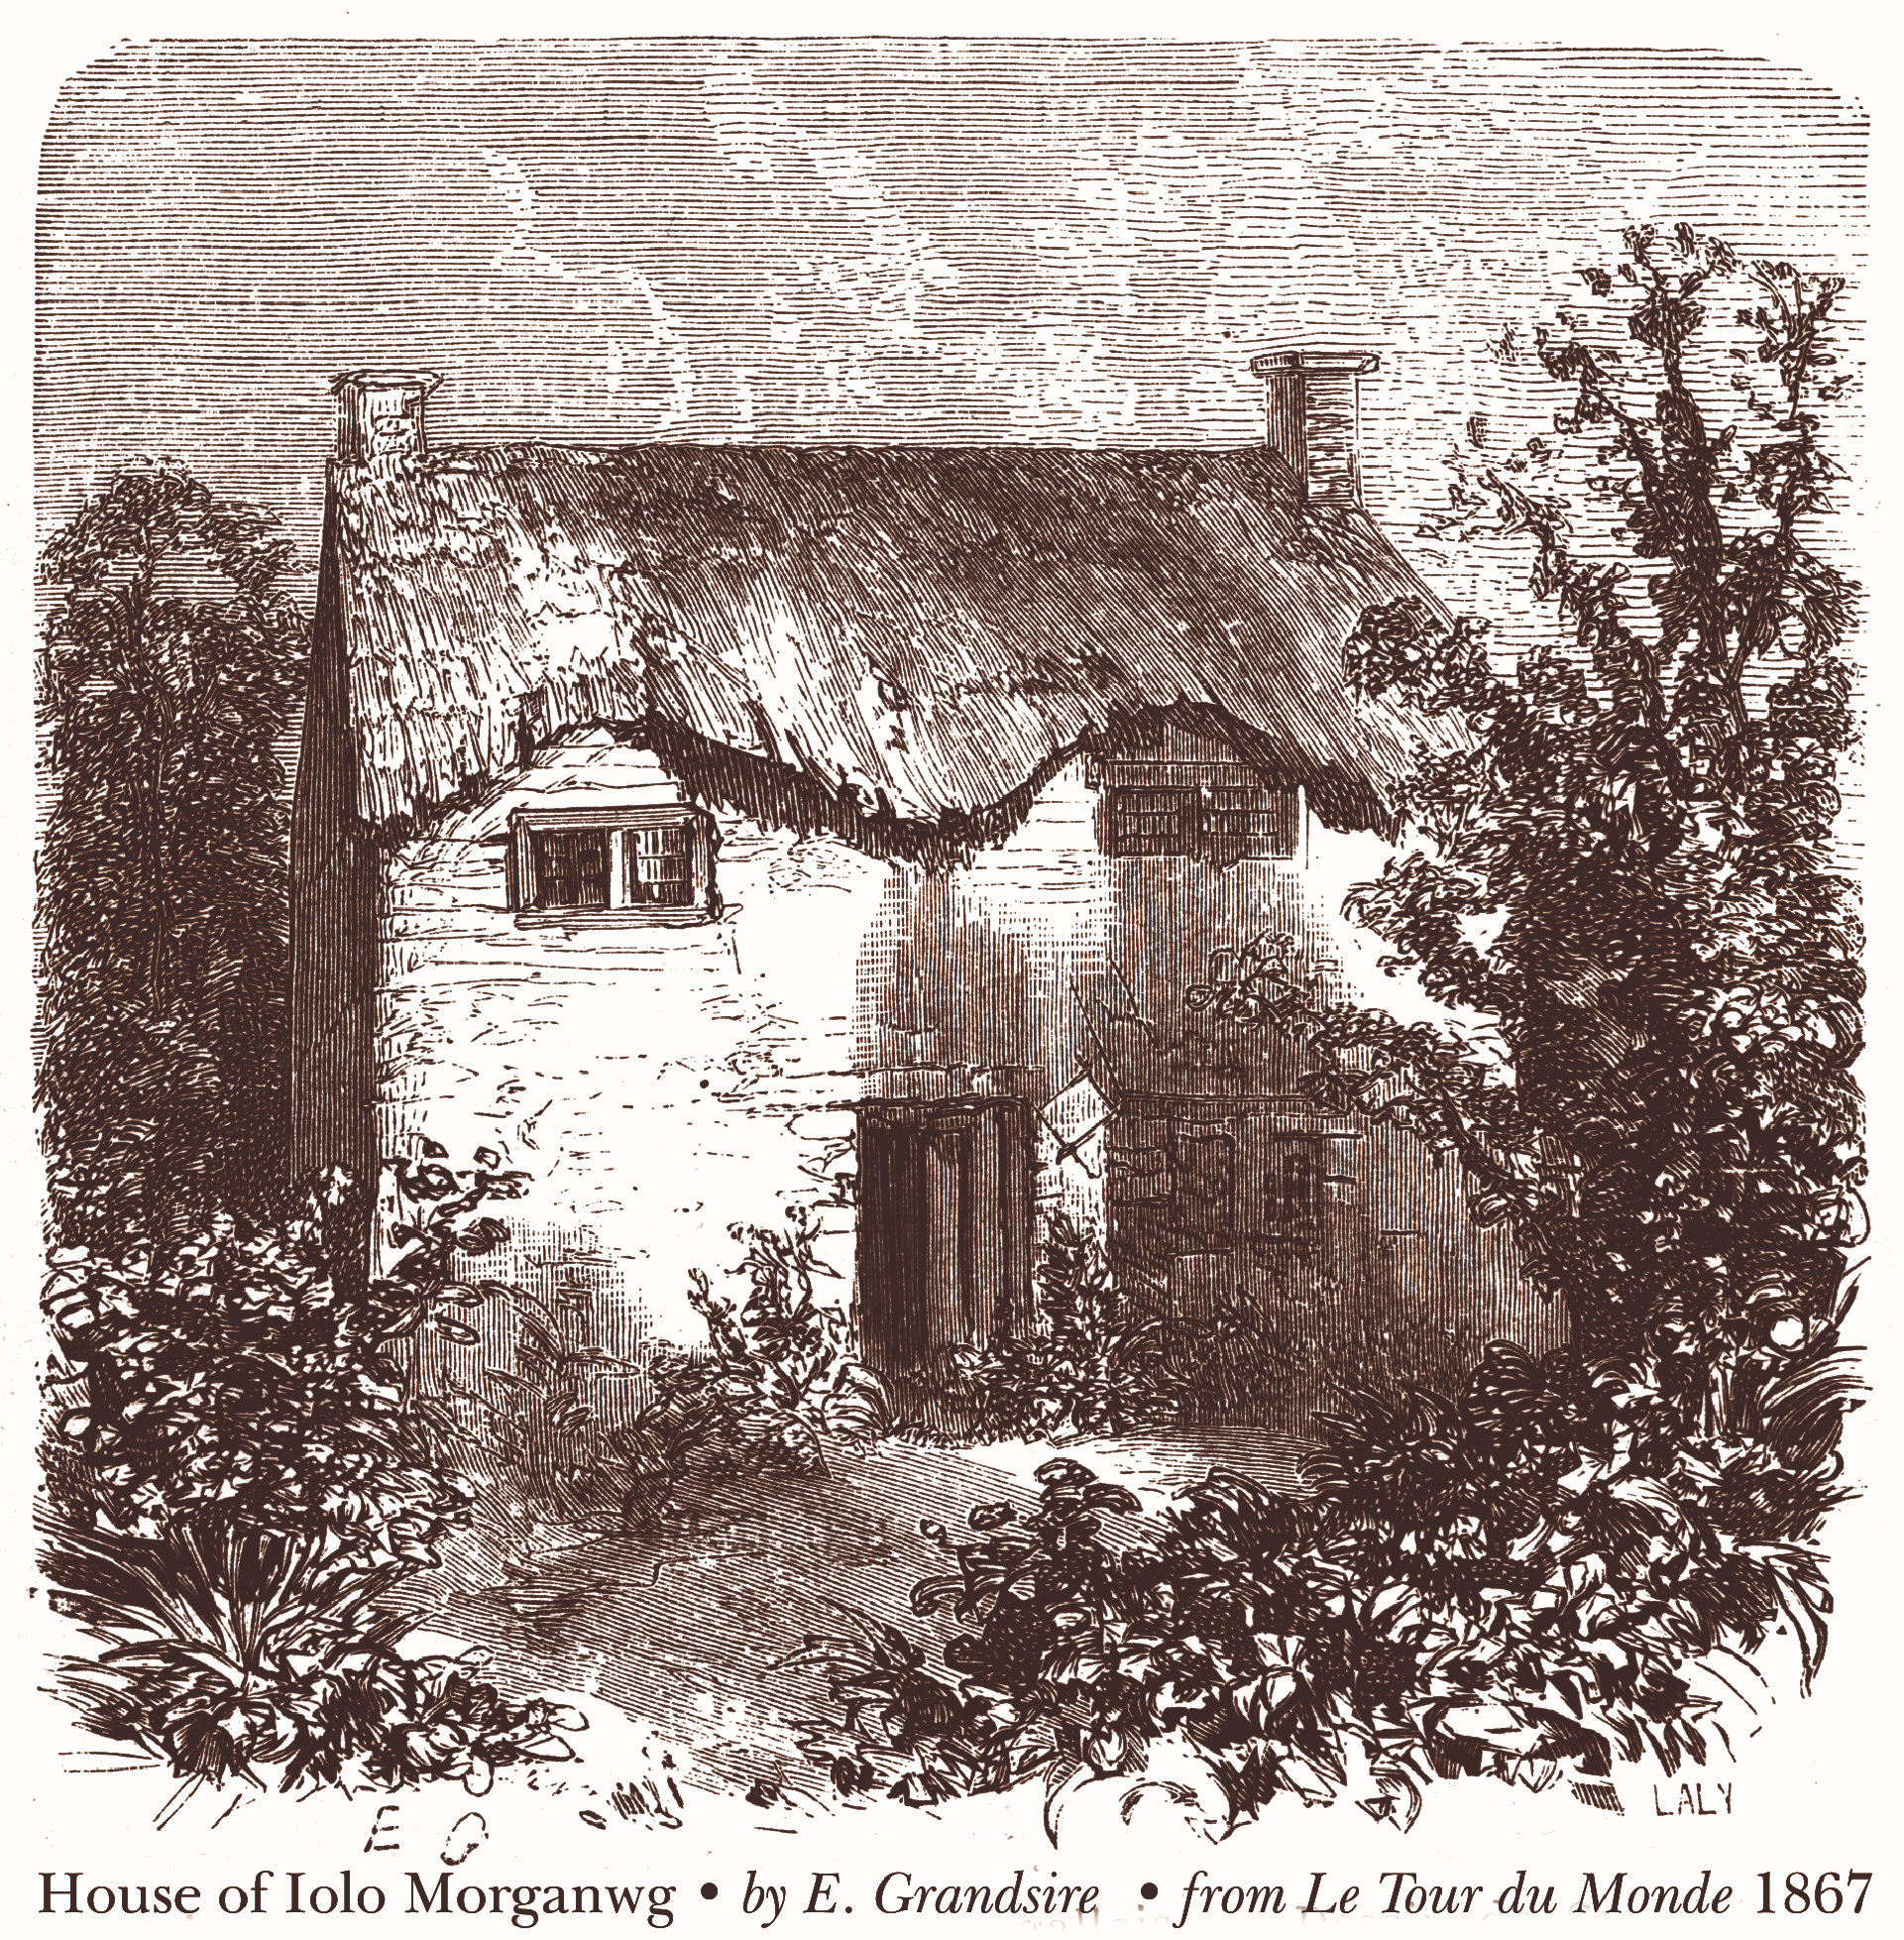 House of Iolo Morganwg - drawn by E. Grandsire - from: Le Tour du Monde (1867)